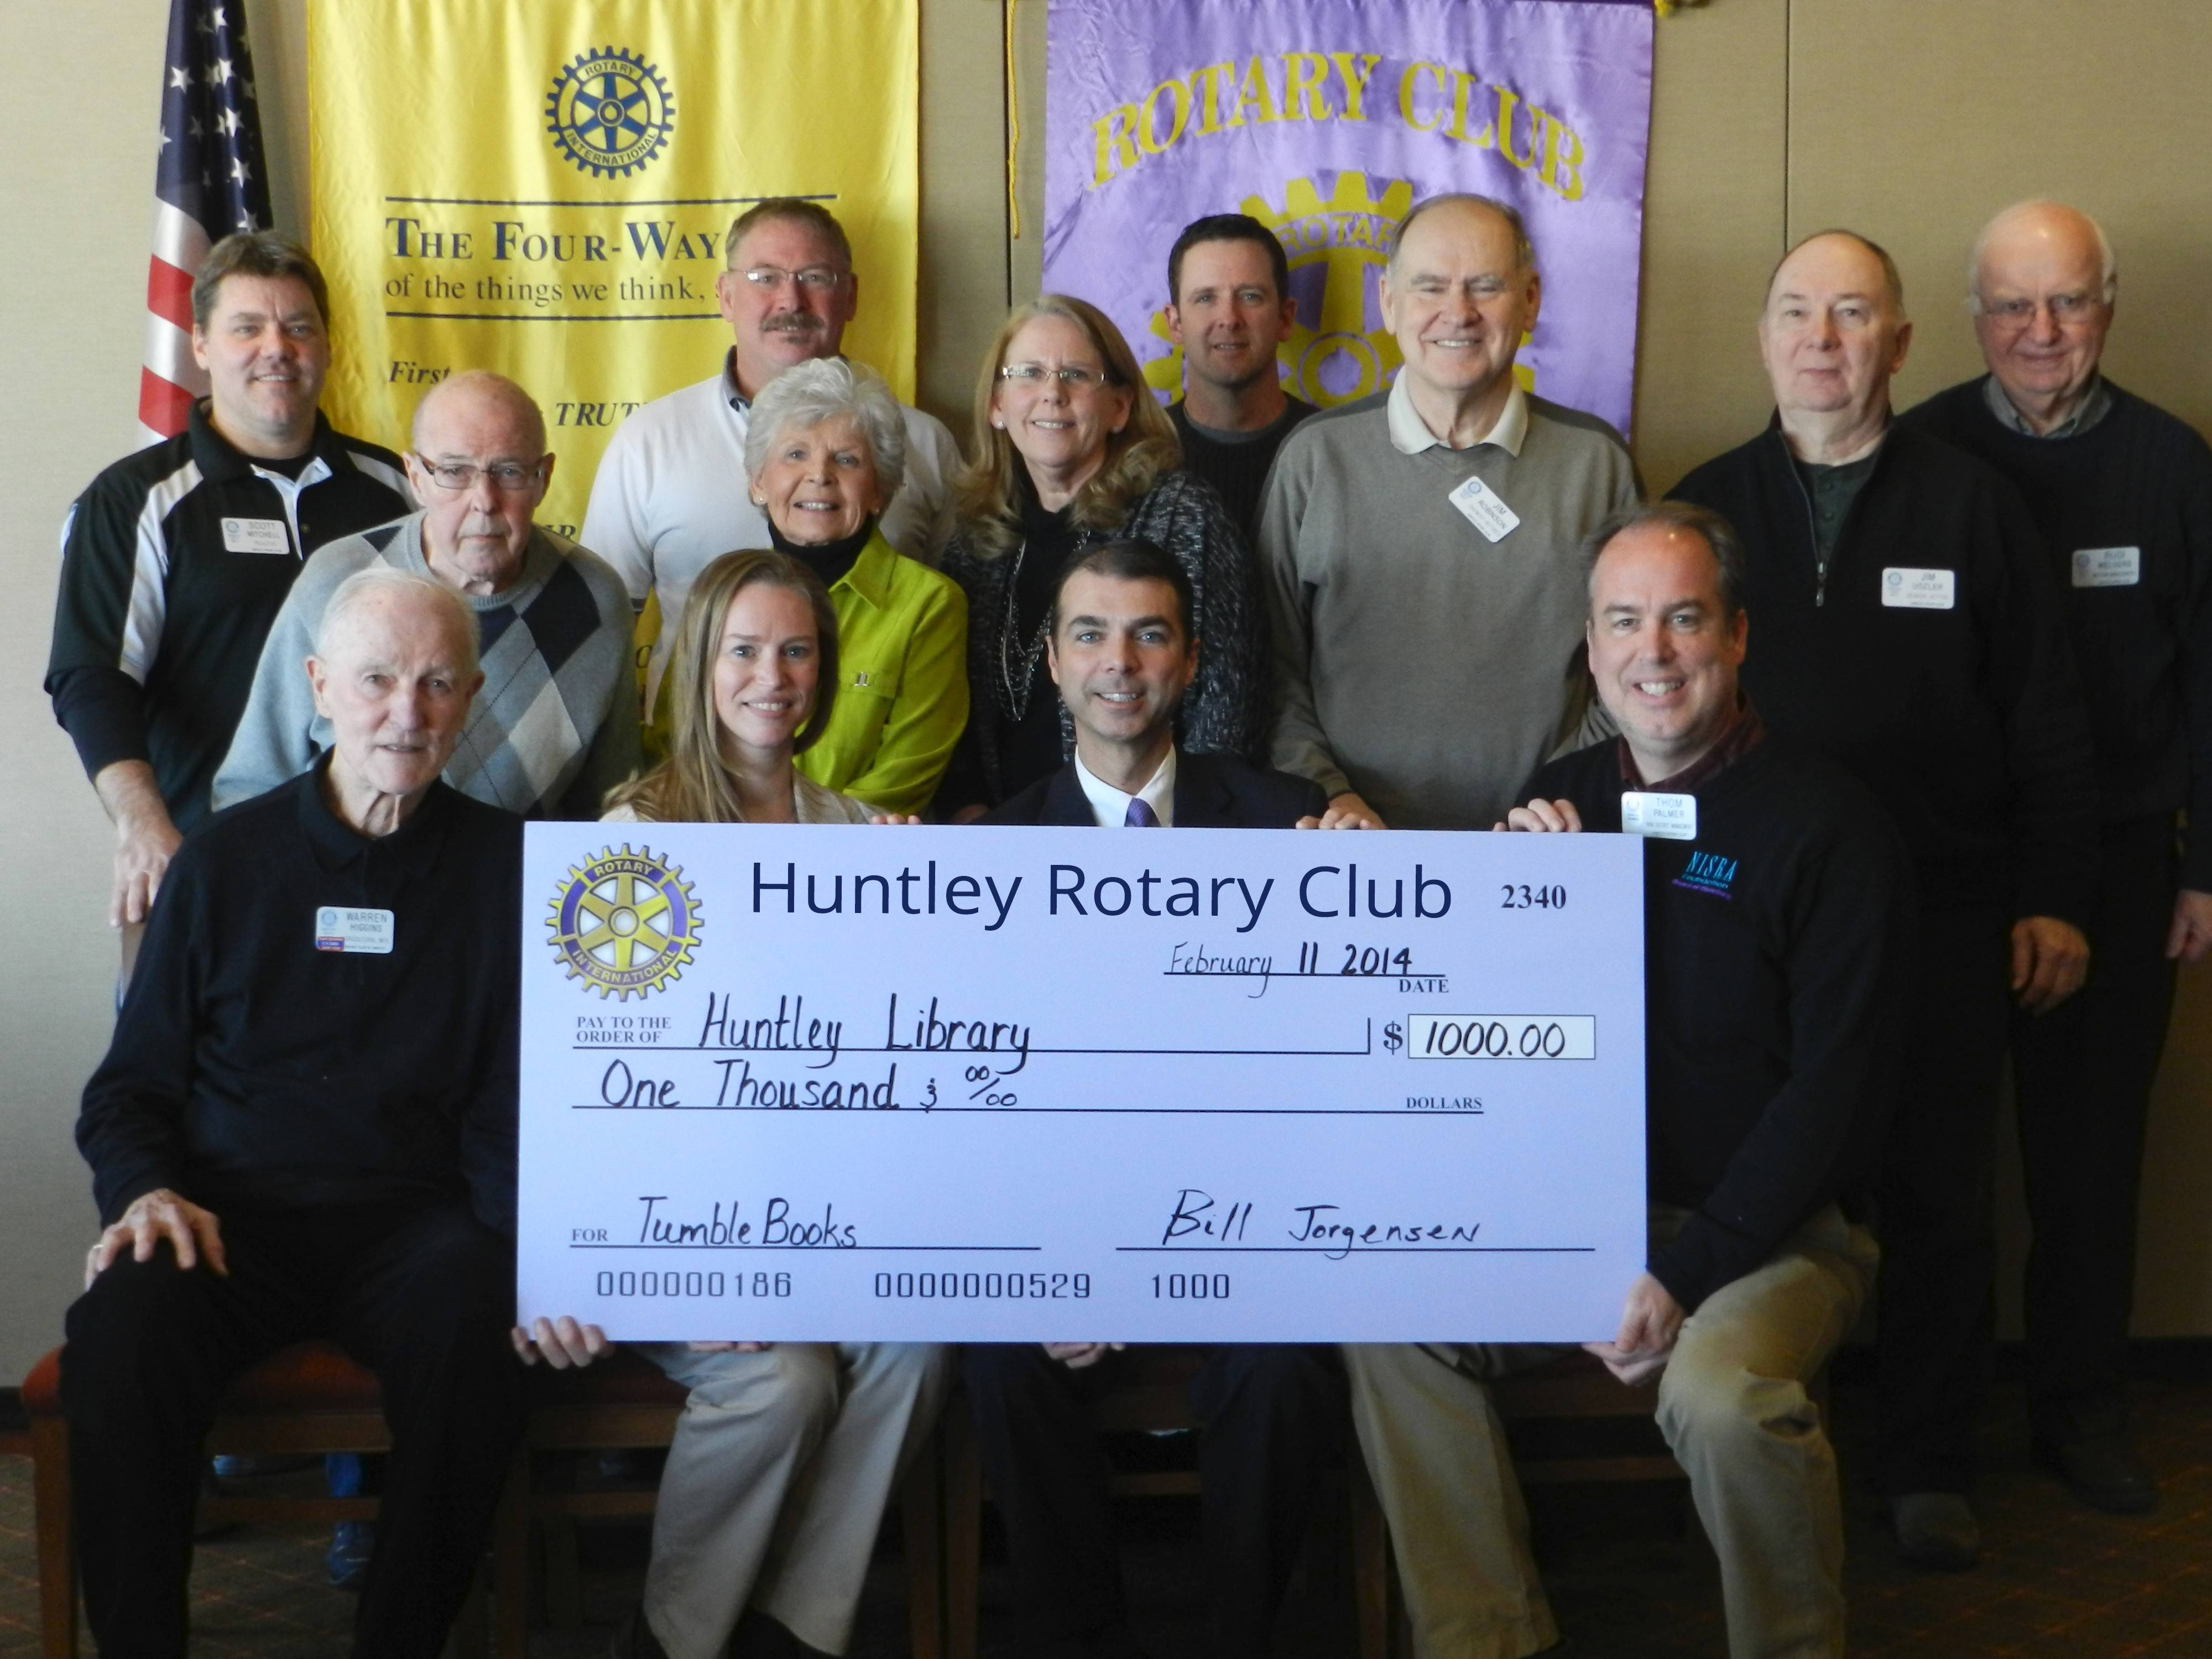 Huntley Rotary Club members with a check for TumbleBooks are, first row, from left, Warren Higgins, Leigh Ann Porsch, Bill Jorgensen, Thom Palmer; and standing, Scott Mitchell, Earl Ferris, Jim Drendel, Muriel Wright, Nancy Topalovich, Chad Alexander, Jim Robinson, Jim Uszler and Rudi Welvers.